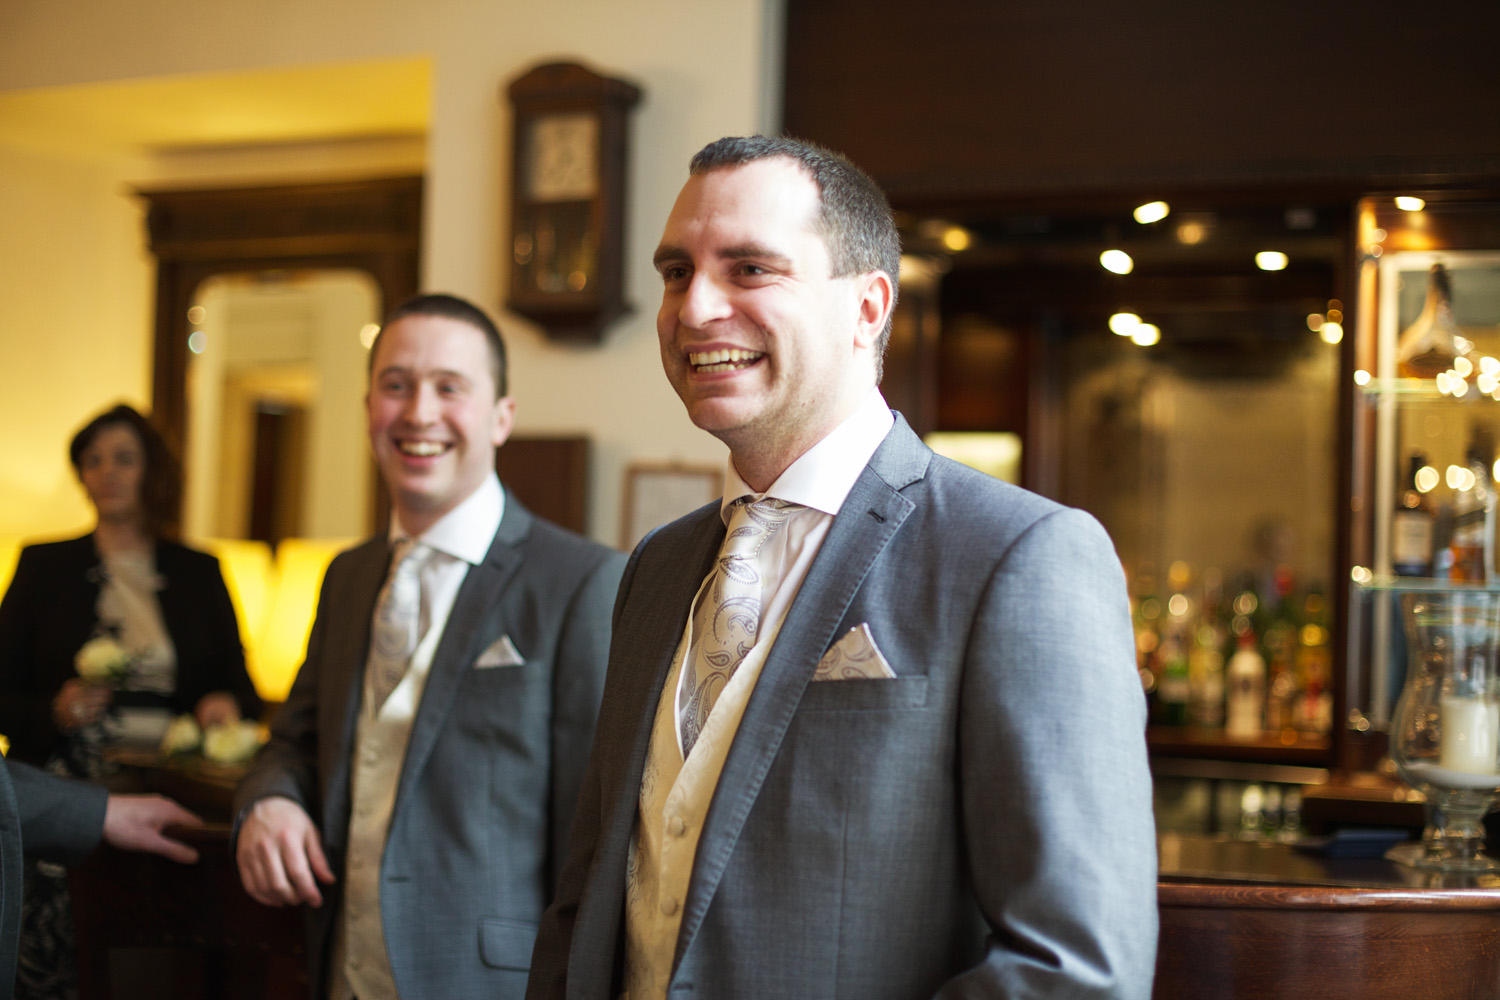 Taplow_House_Hotel_Wedding_Photographer_Maidenhead_024.jpg